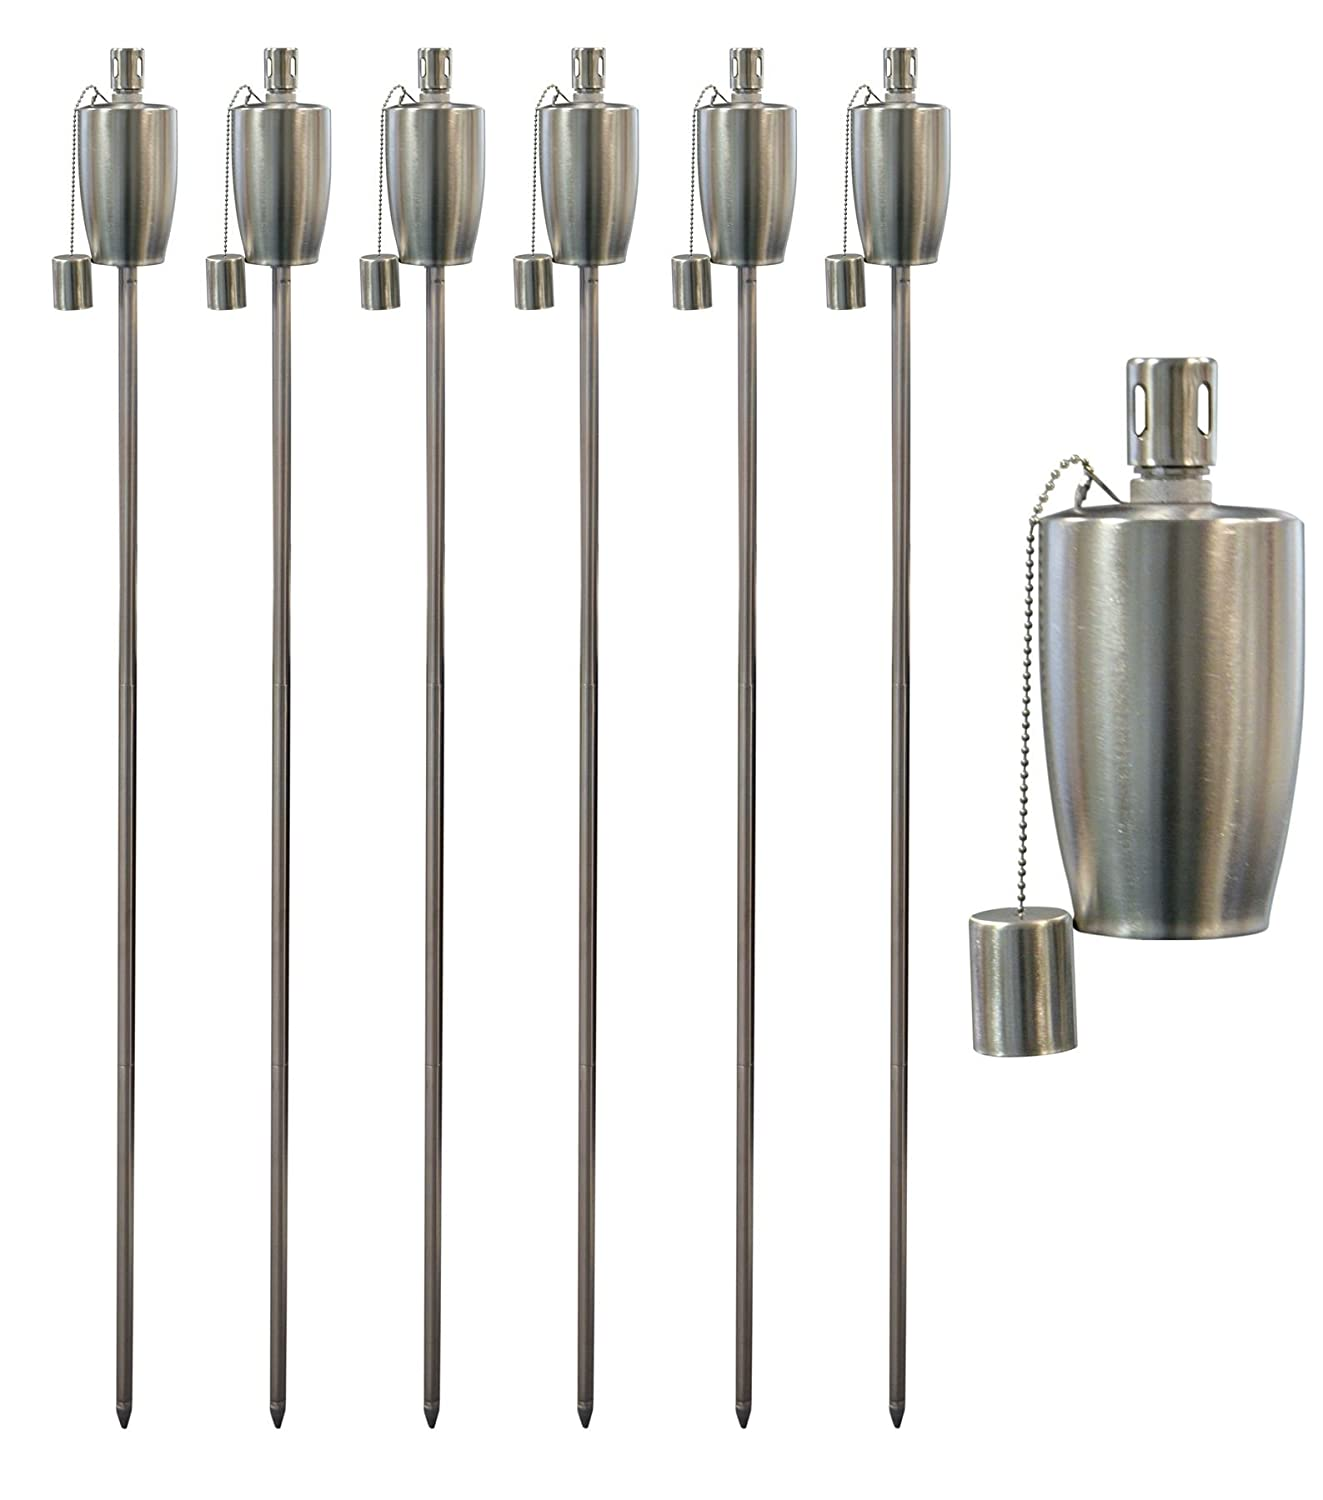 Garden Fire Torch - Oil/Paraffin Lantern - 1460mm Barrel Design - Pack of 6 Harbour Housewares